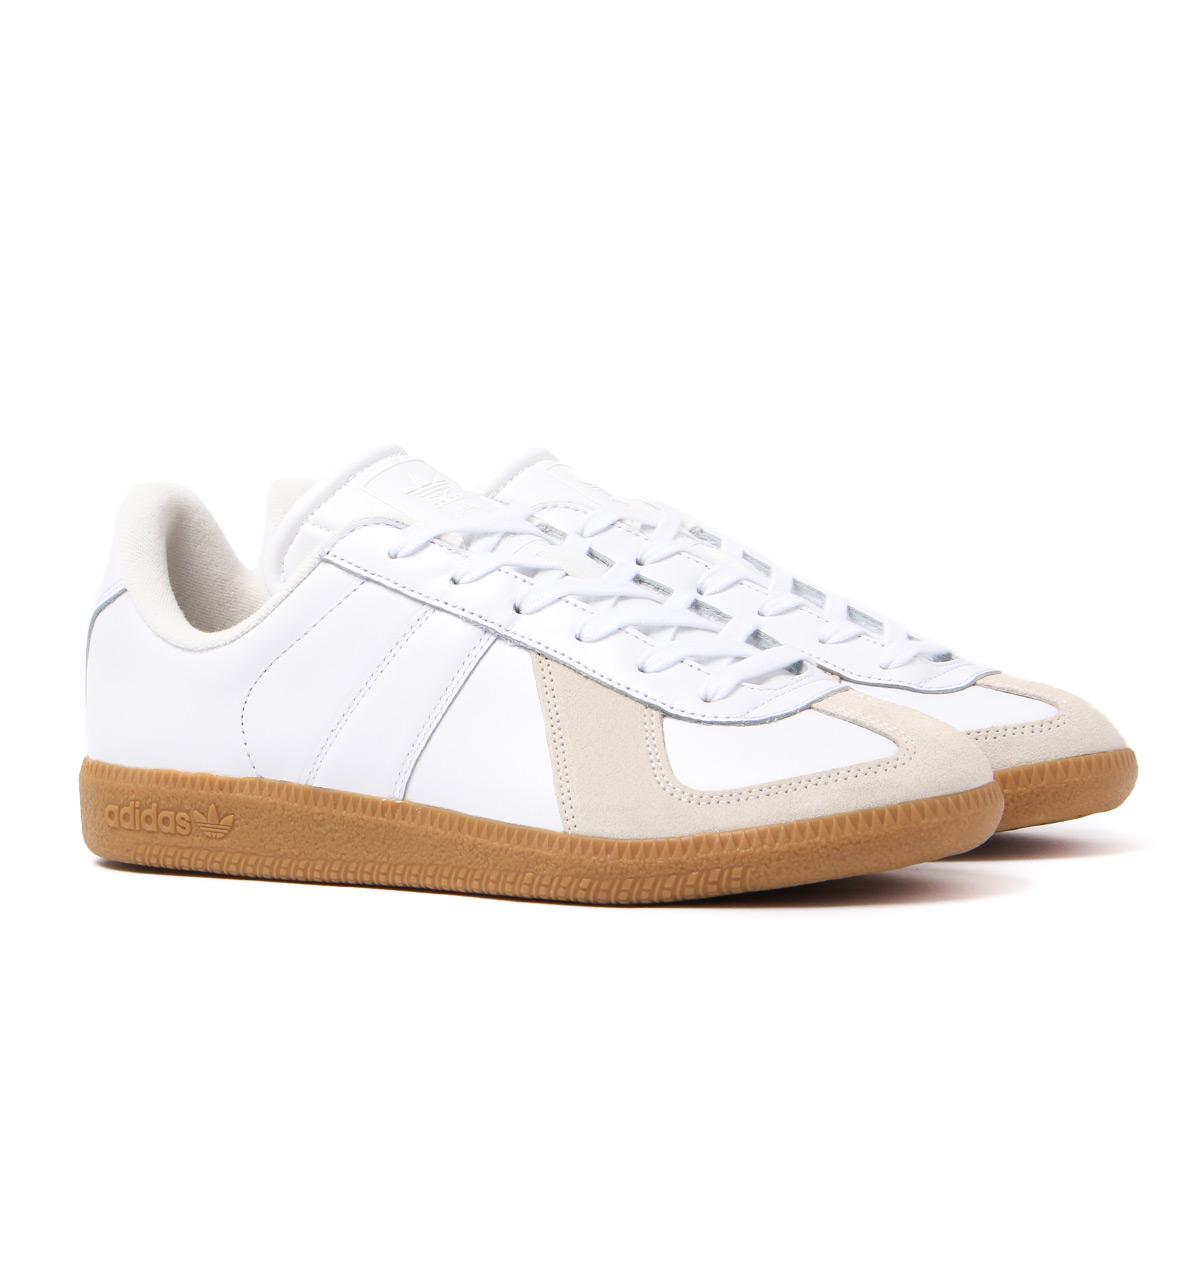 Bw Army White Leather Vintage Trainers